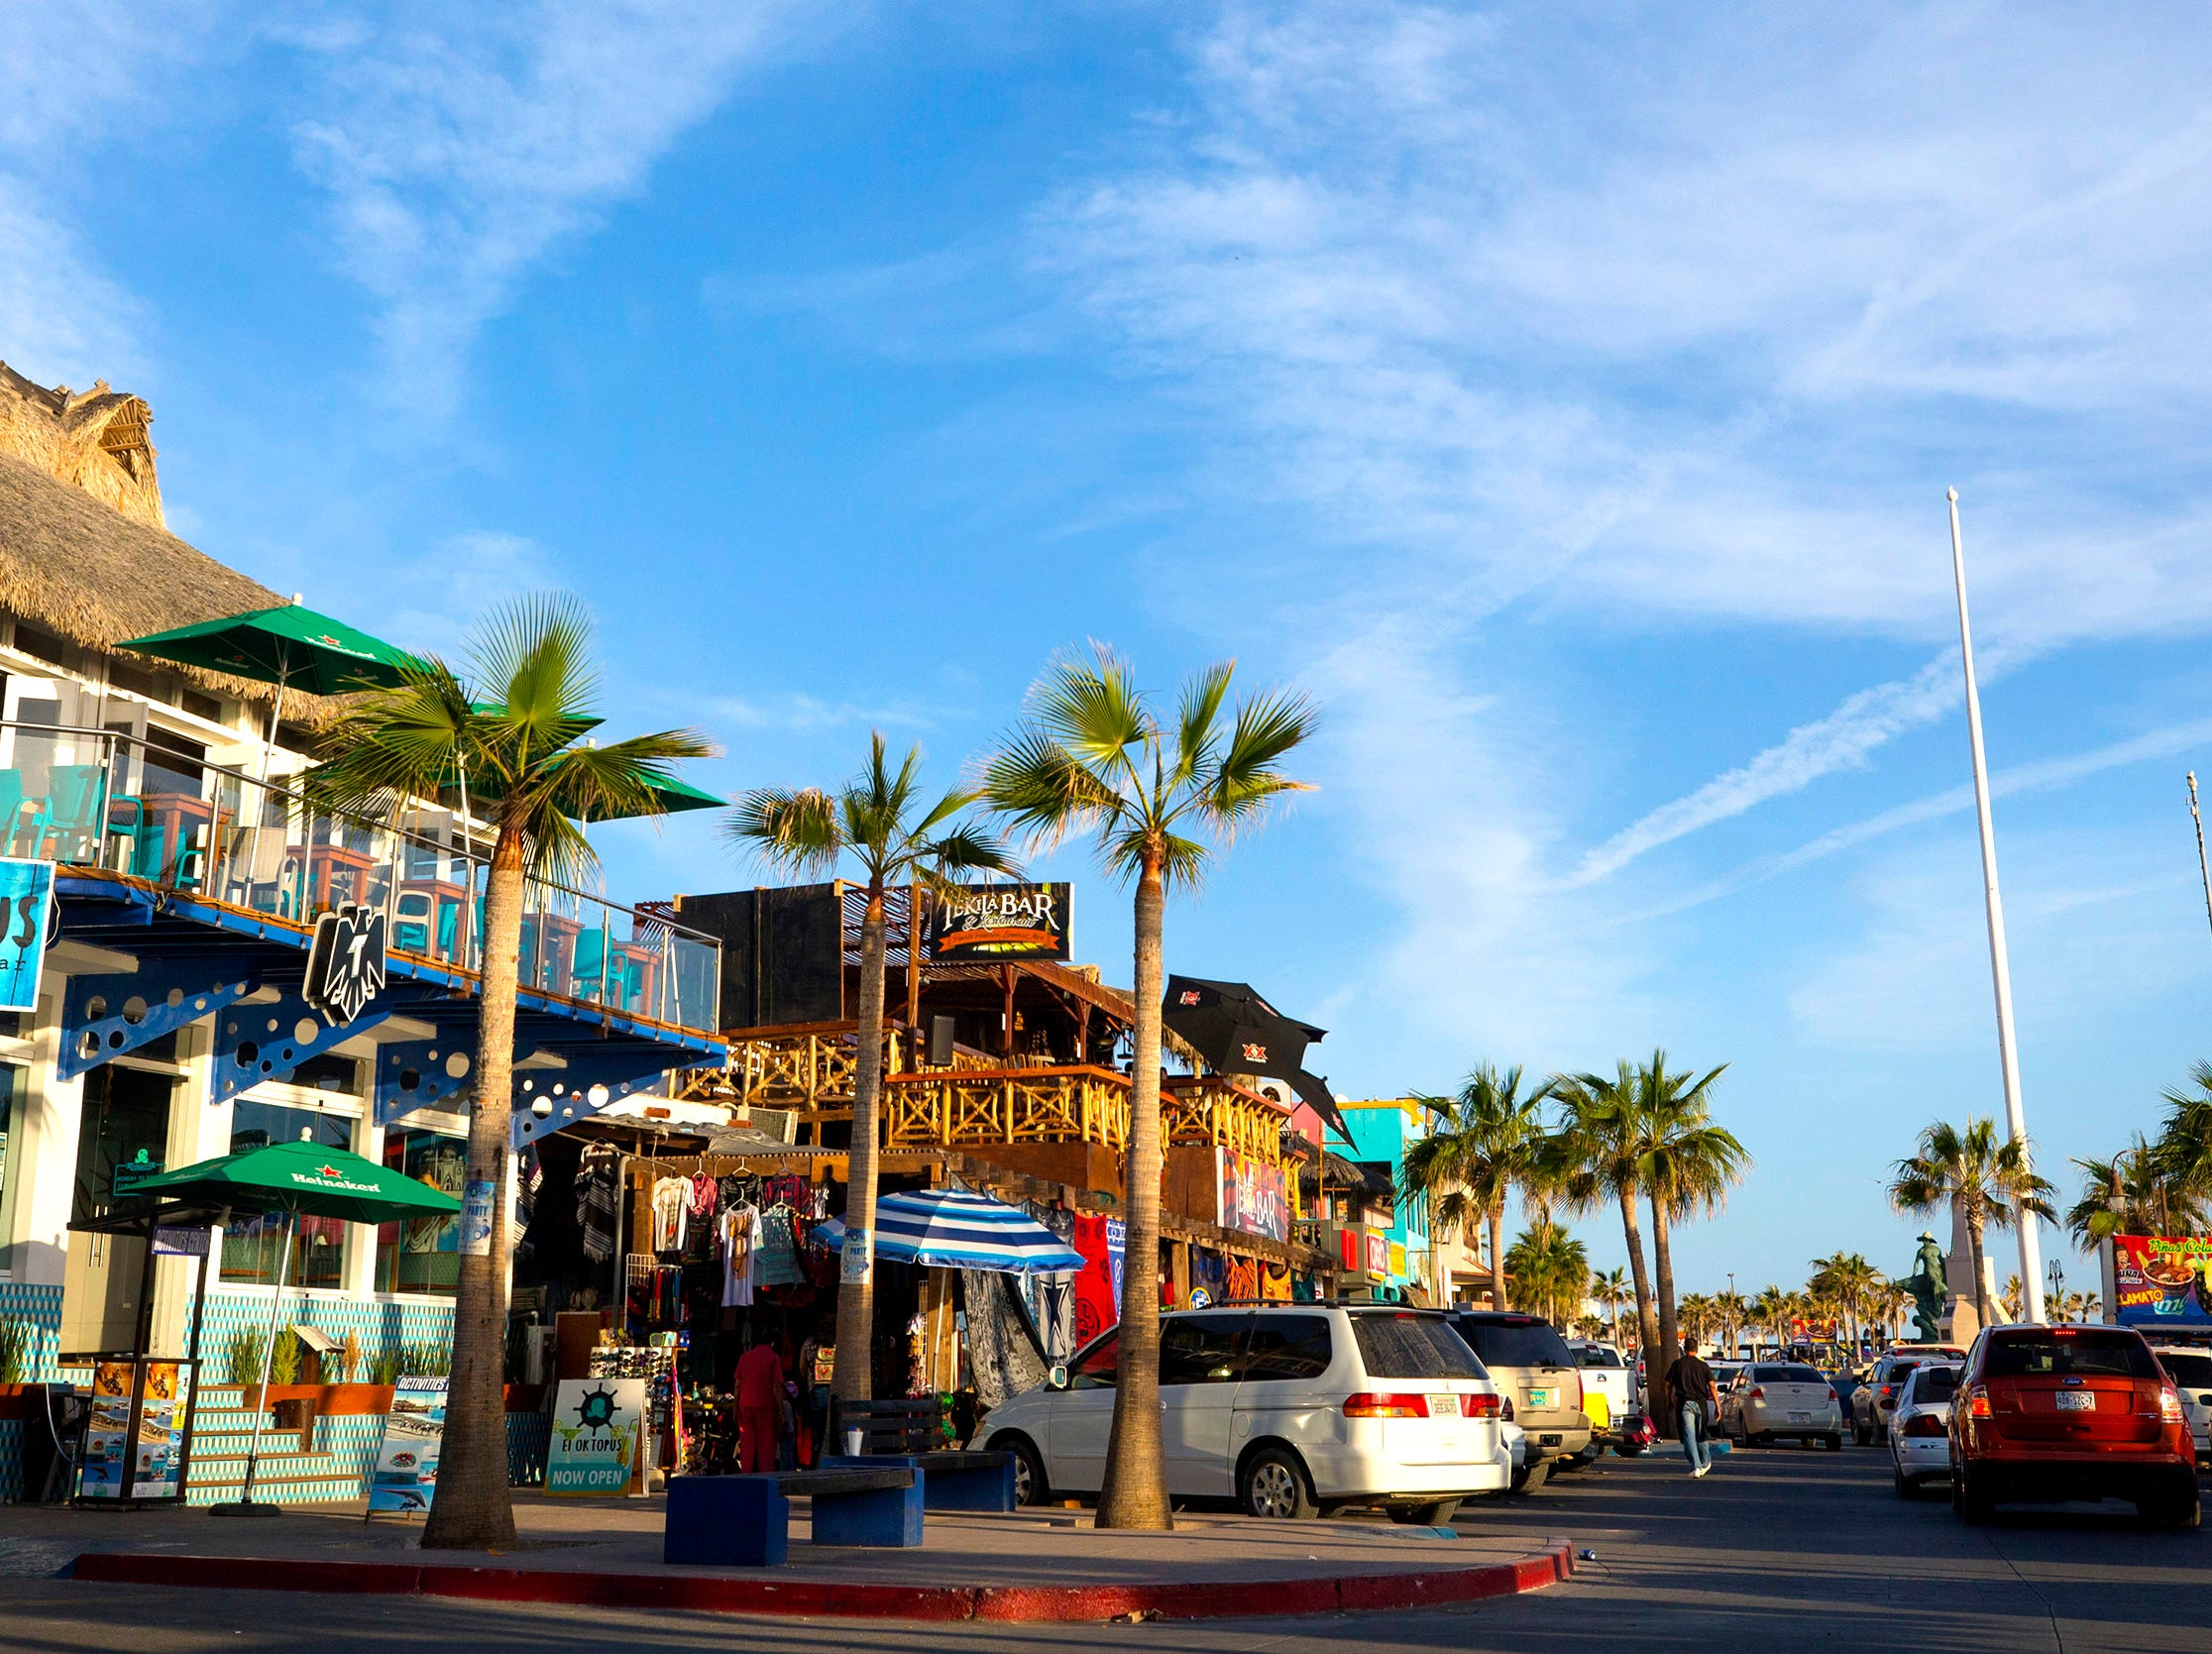 Eating, shopping and sunset watching can be enjoyed at the Malecon in Puerto Penasco, Mexico.